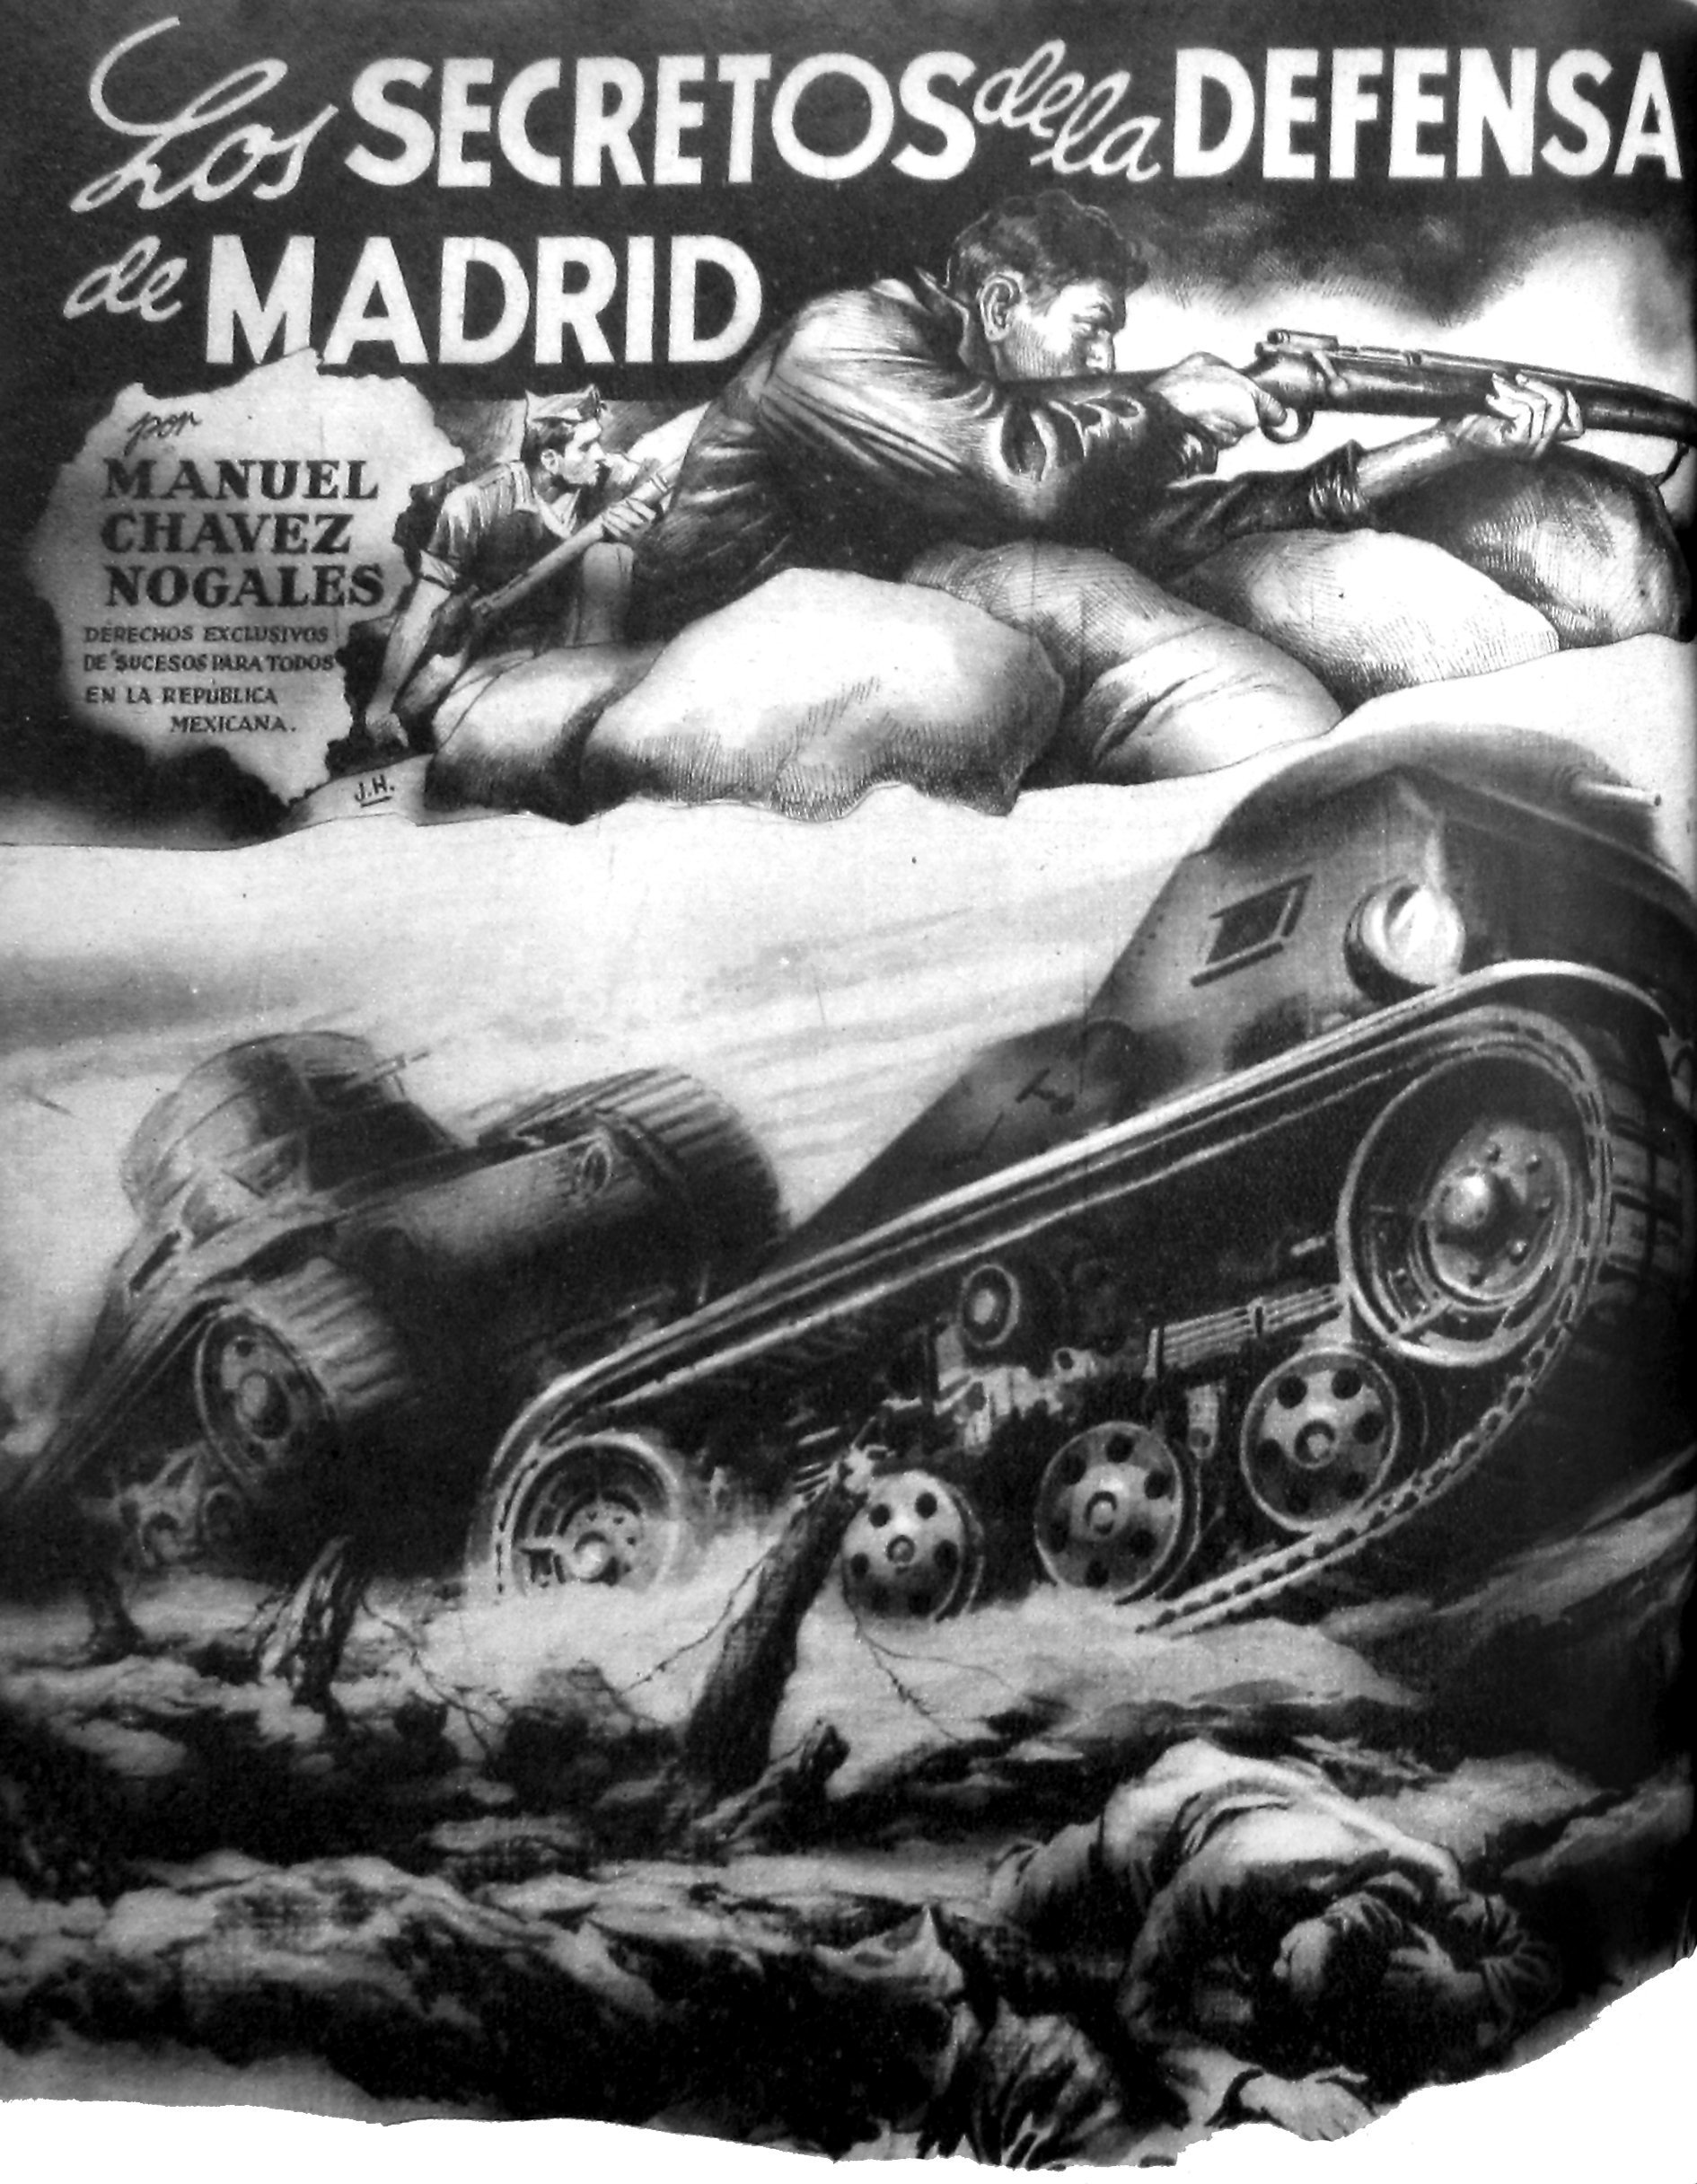 Mexican edition of journalist Manuel Chaves Nogales' Secrets of the Defense of Madrid